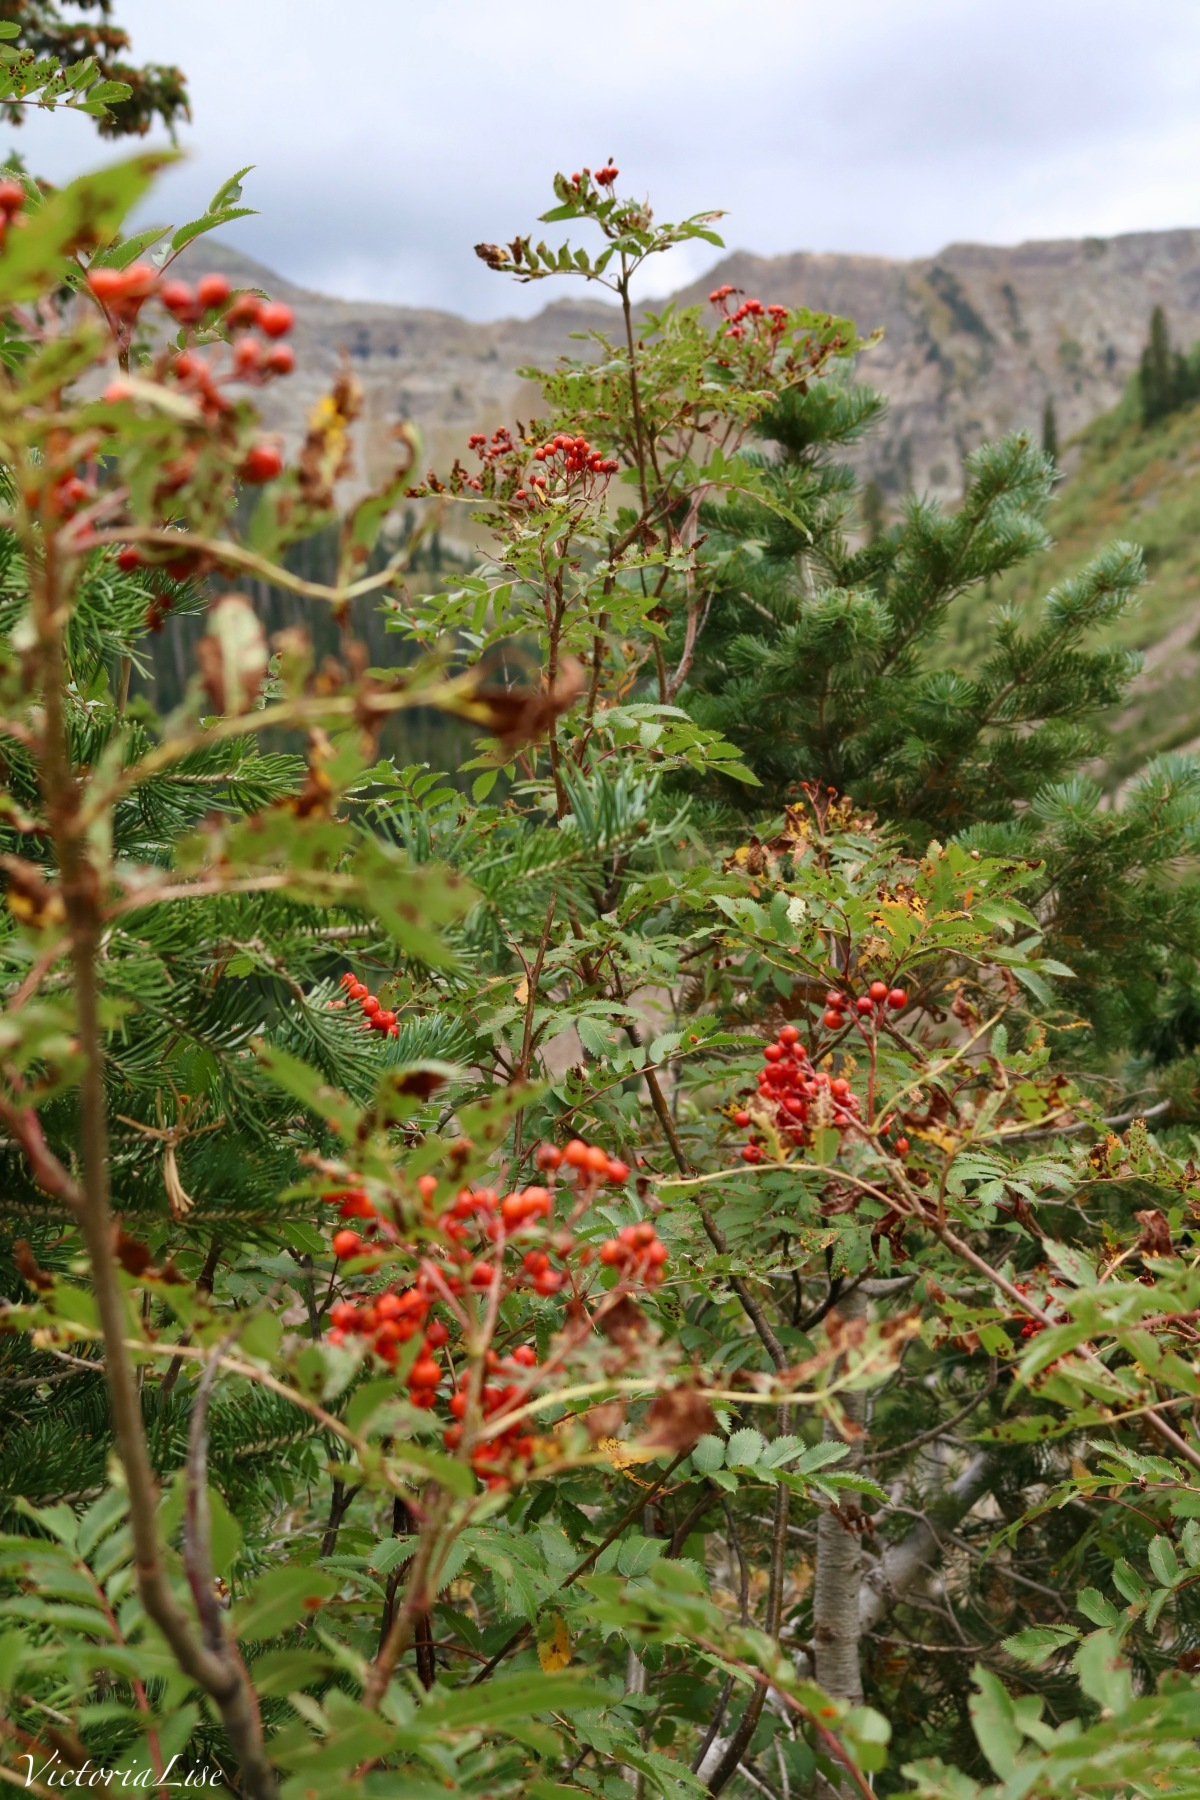 Holly berries against green pines and the west elk mountain range in the background. ©Victoria Lise 2018.